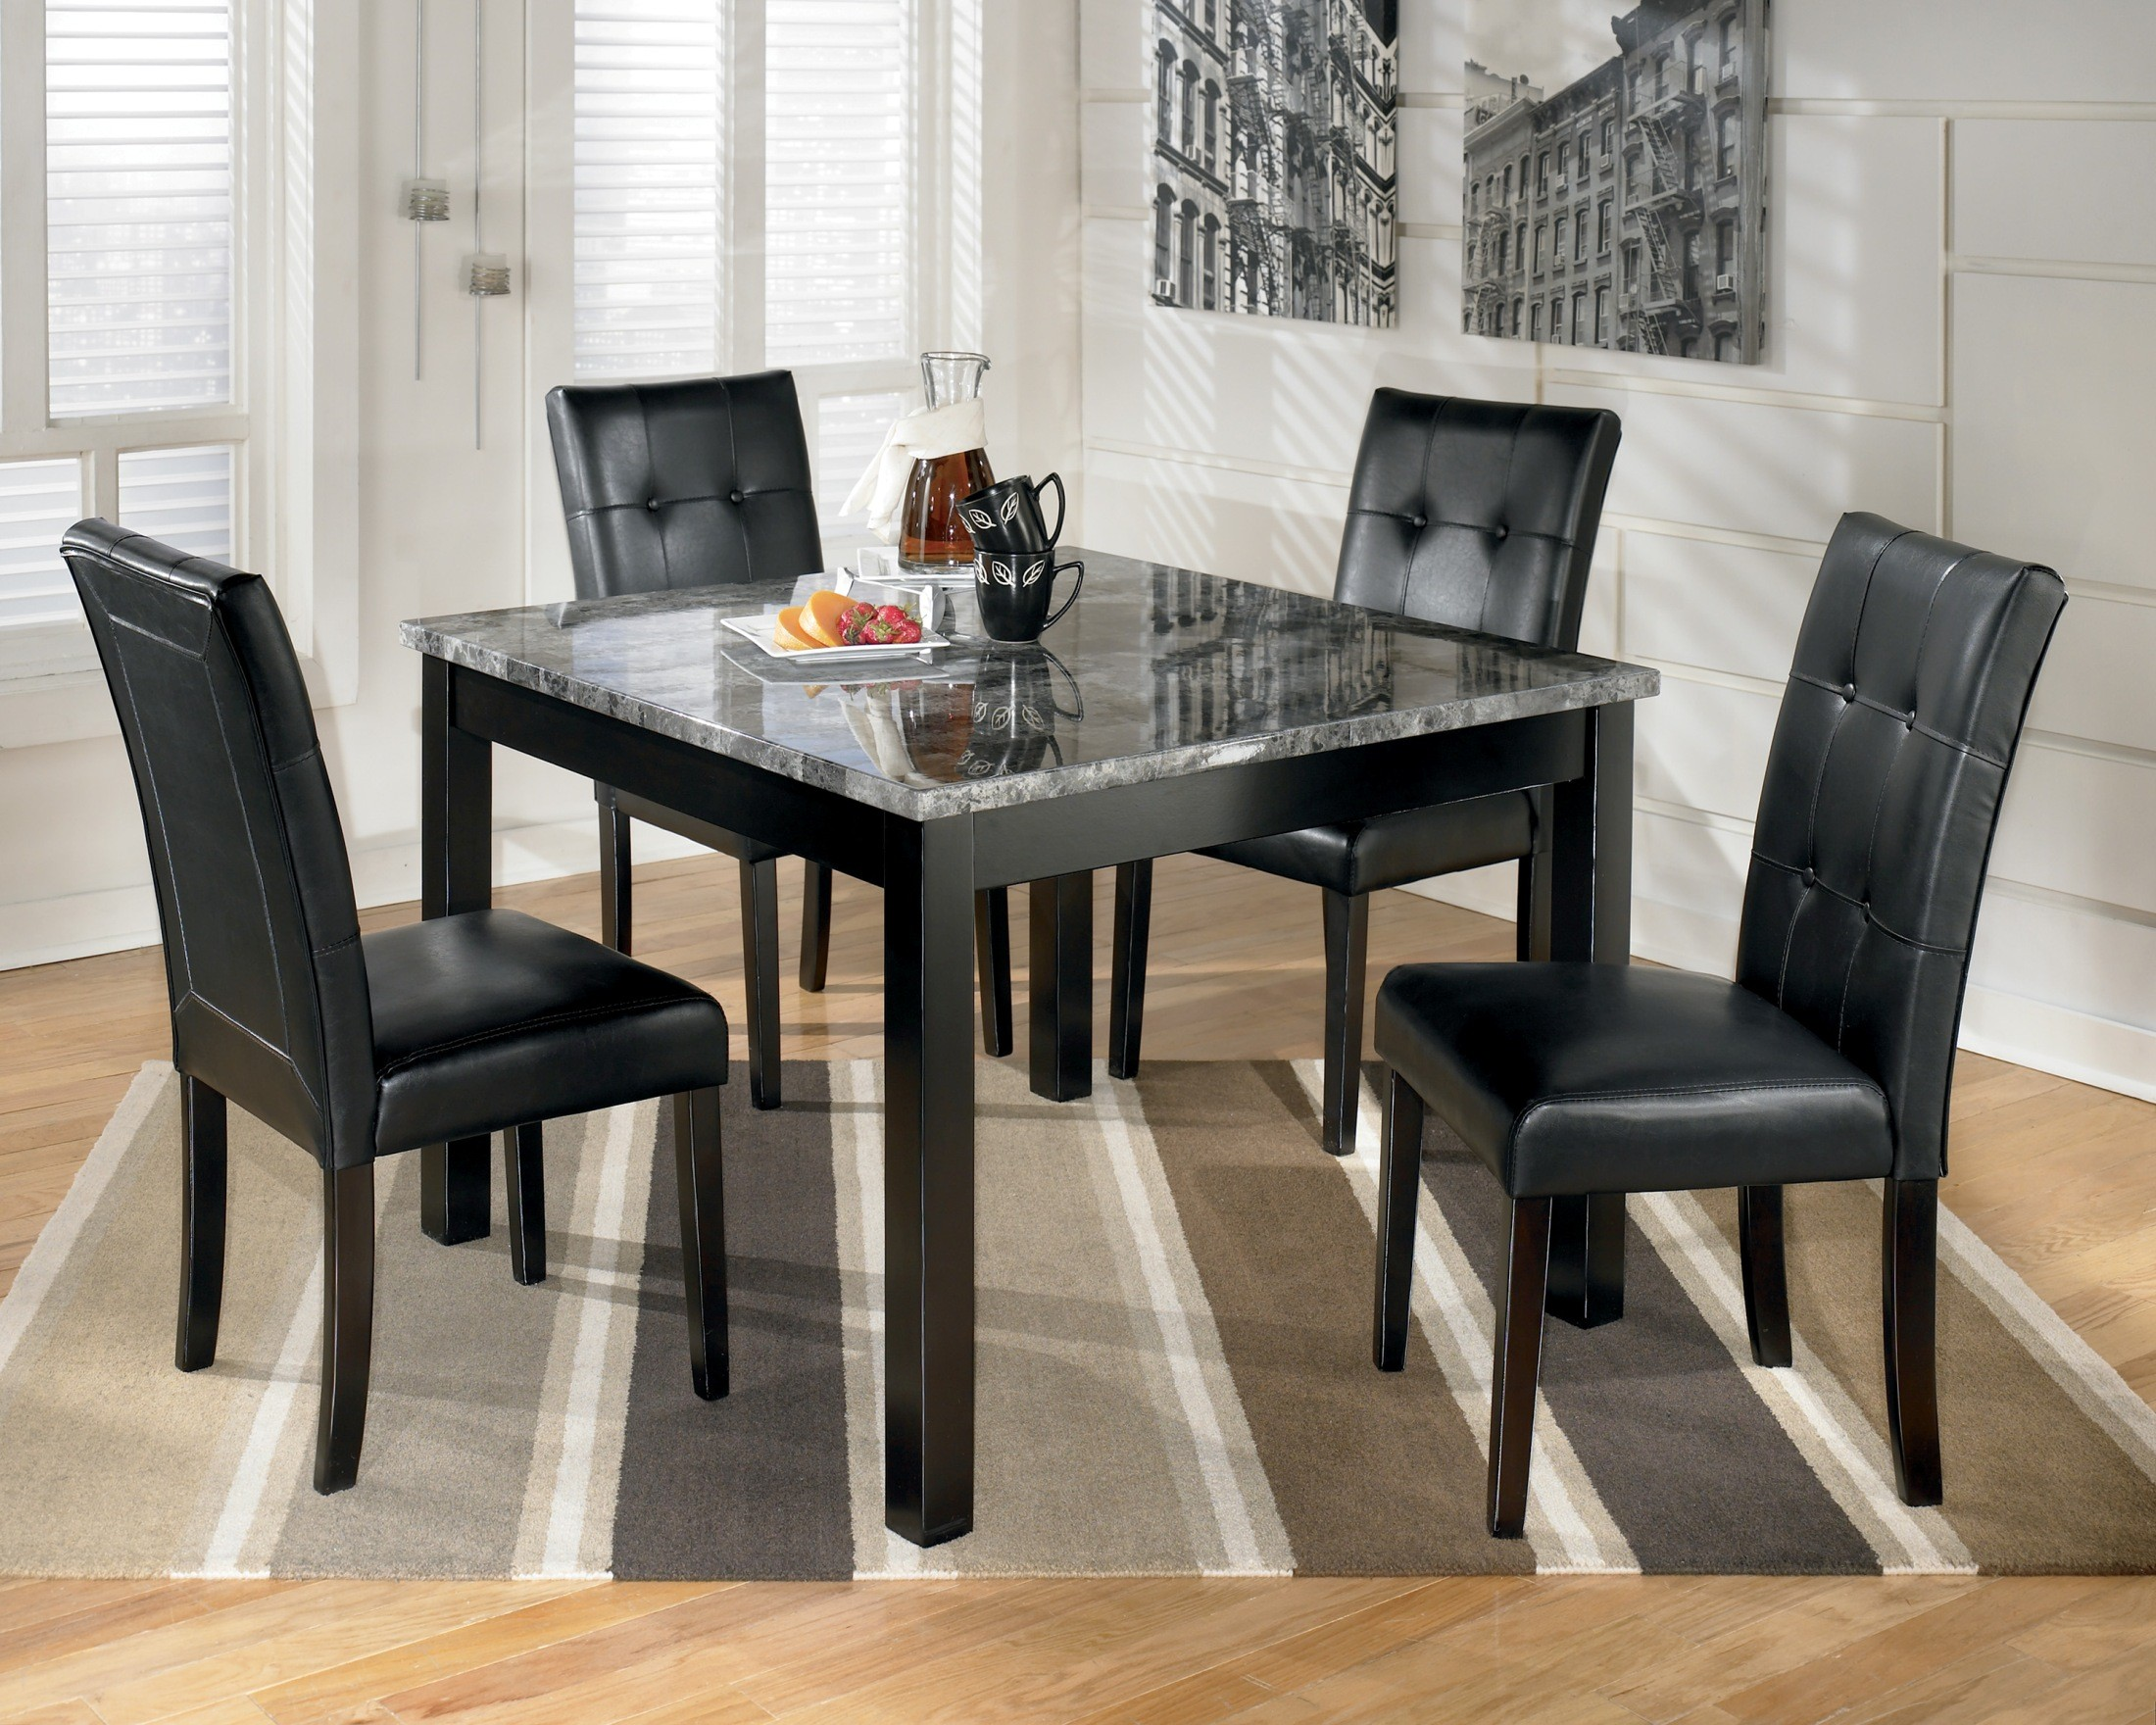 Maysville Square Dining Room Table Set D154 225 Ashley  : d154 225 from colemanfurniture.com size 2200 x 1760 jpeg 789kB